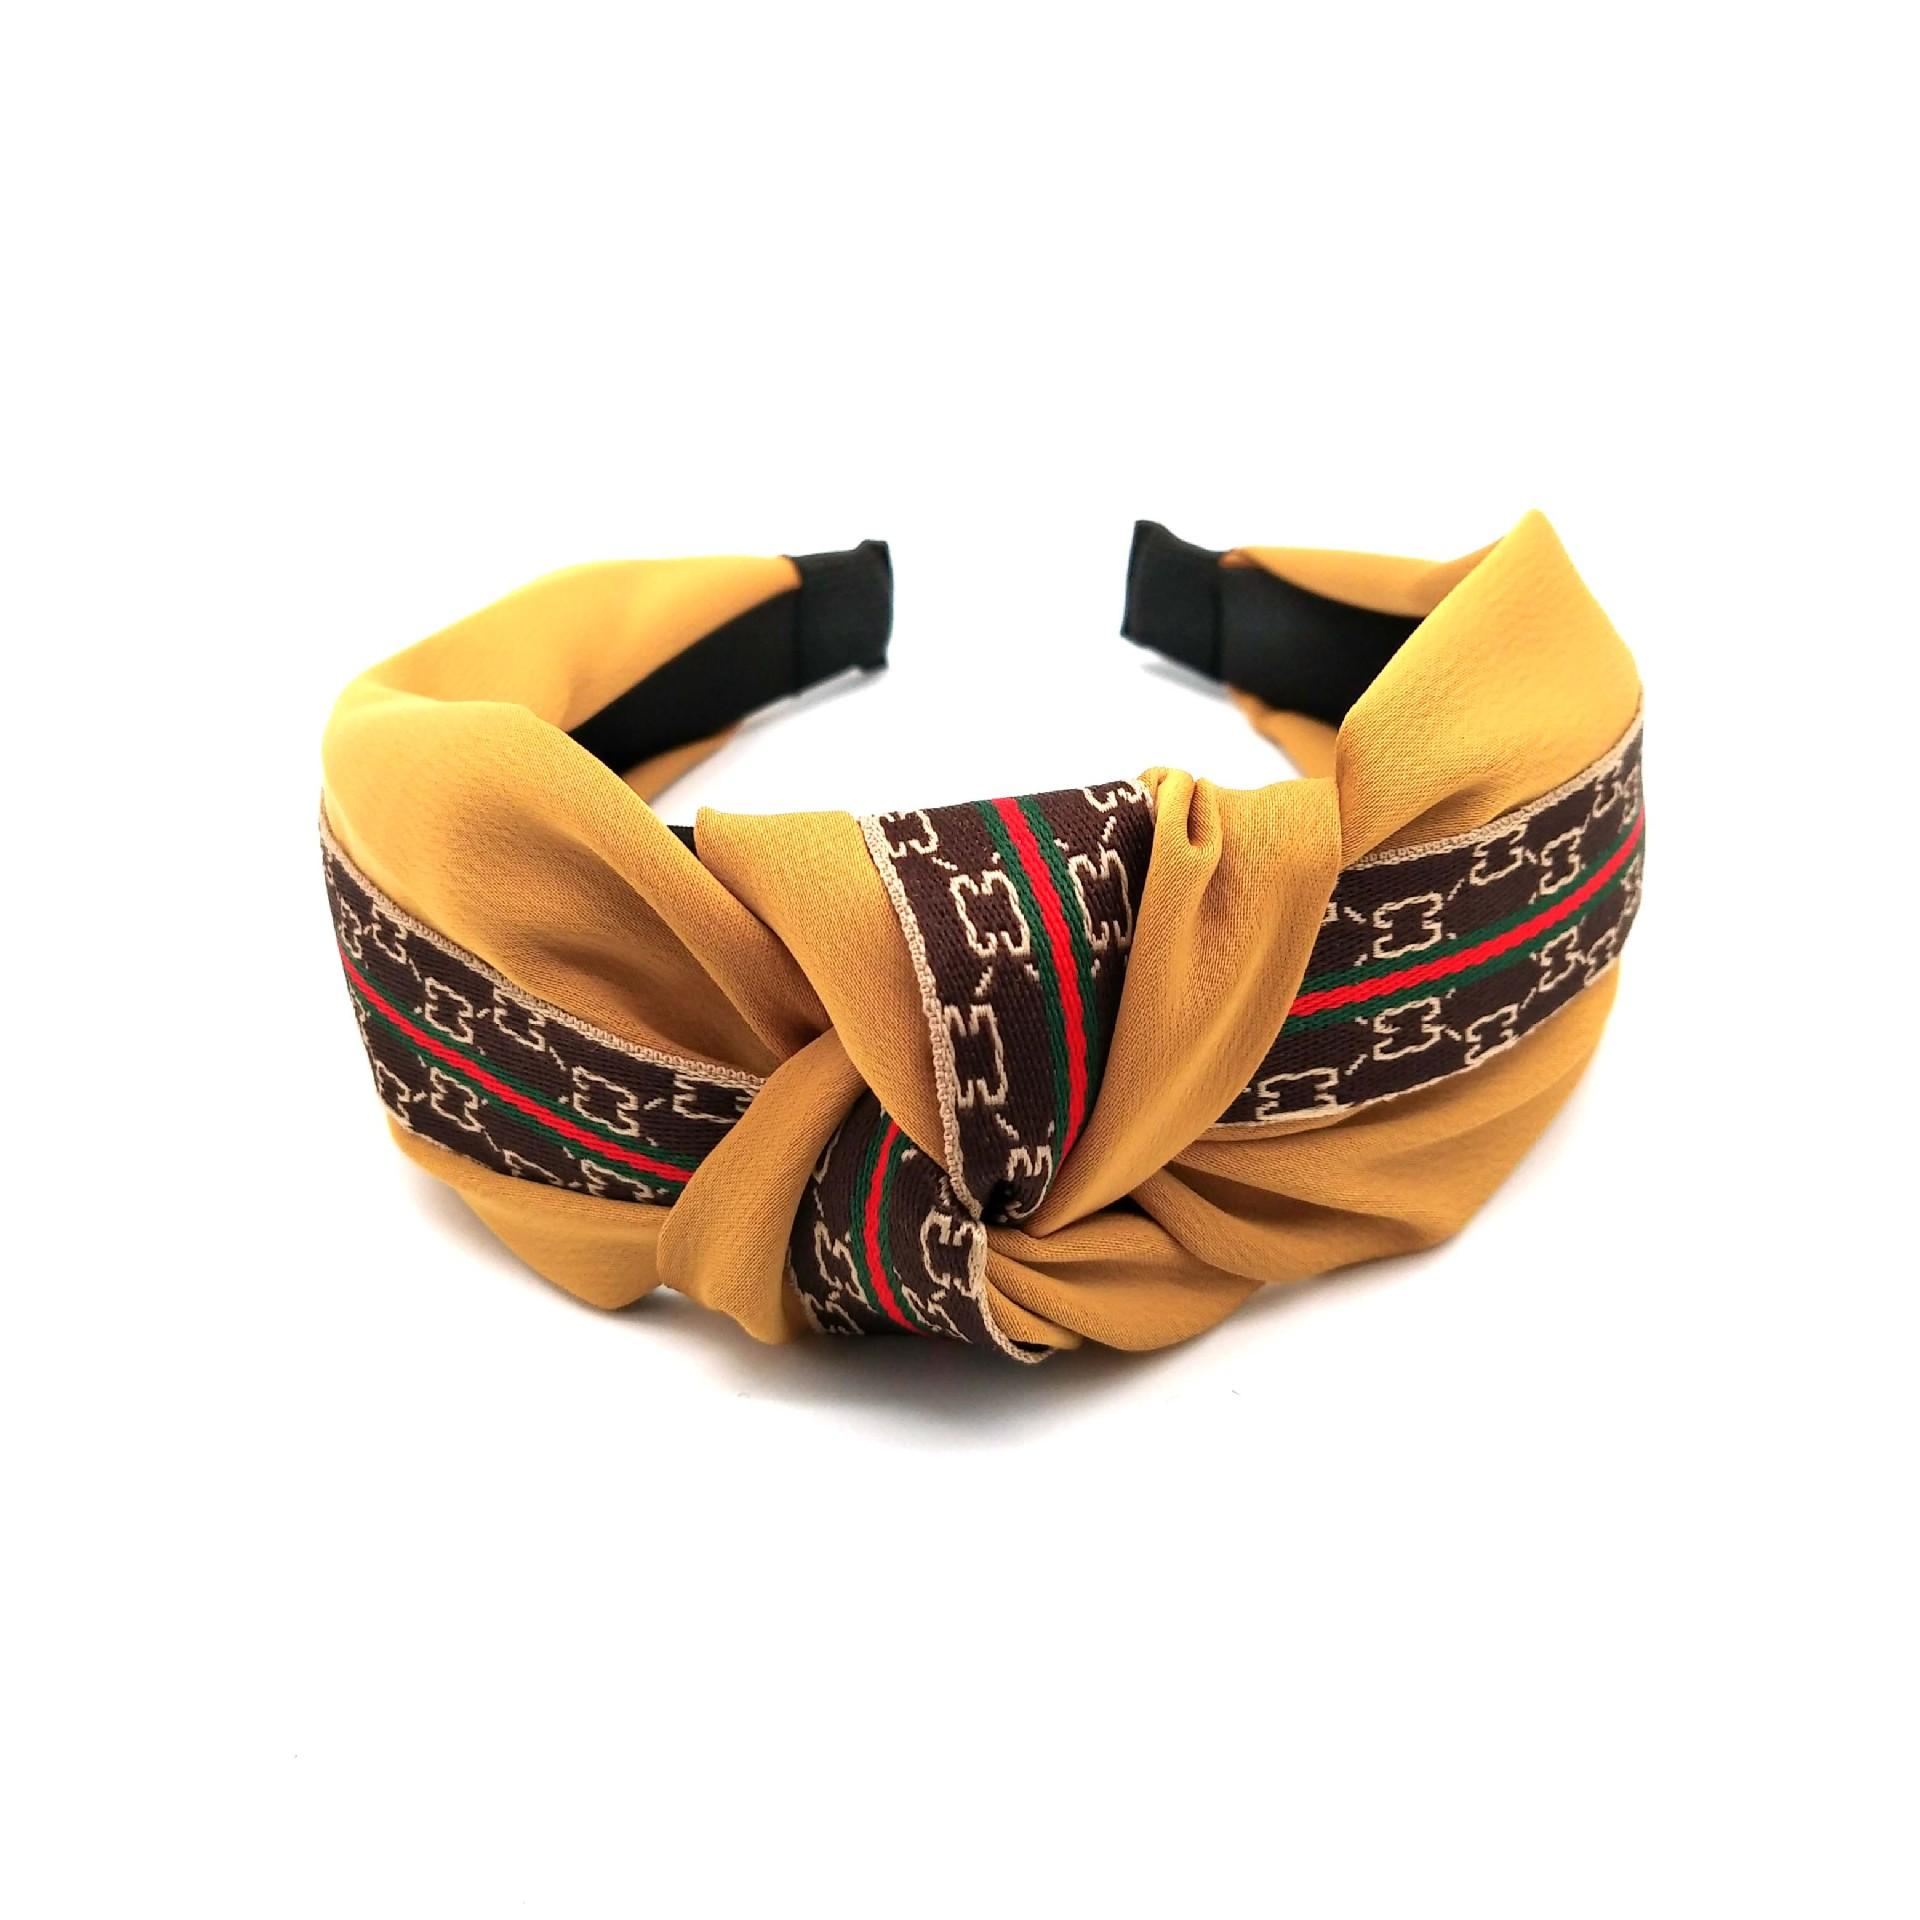 Headband Knot Hair Band Wide-brimmed Pure Color Ribbon High-grade Fabric Korean Broadside Fabric Kink Hairpin Accessories Factory Direct